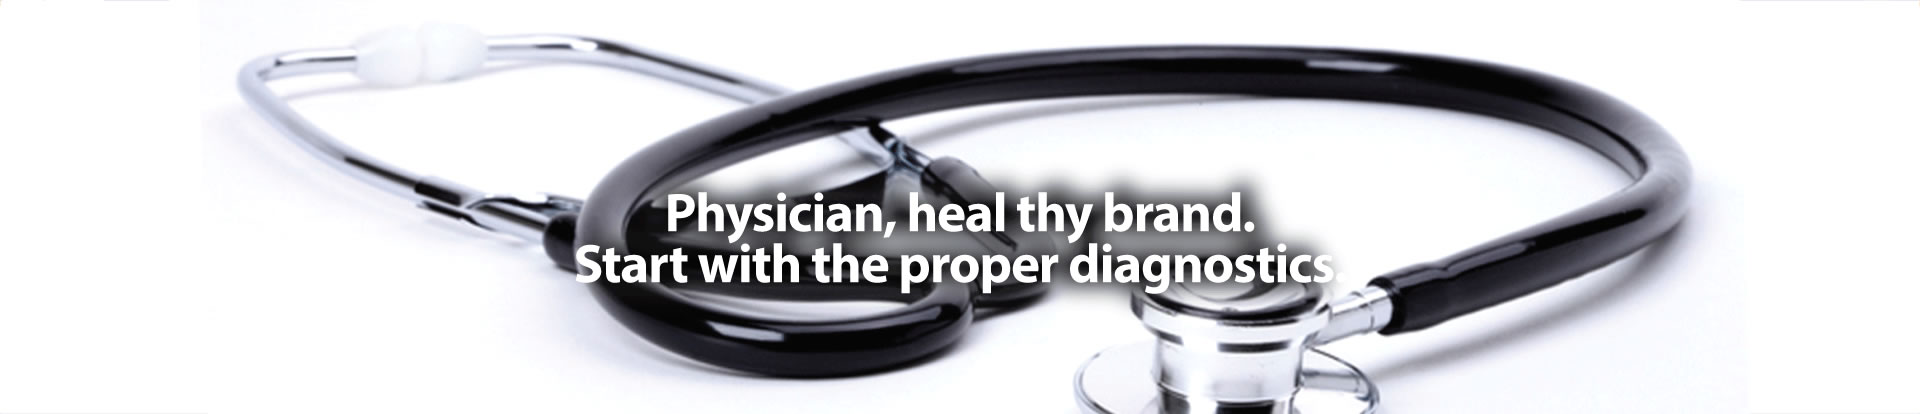 Physician, heal thy brand.